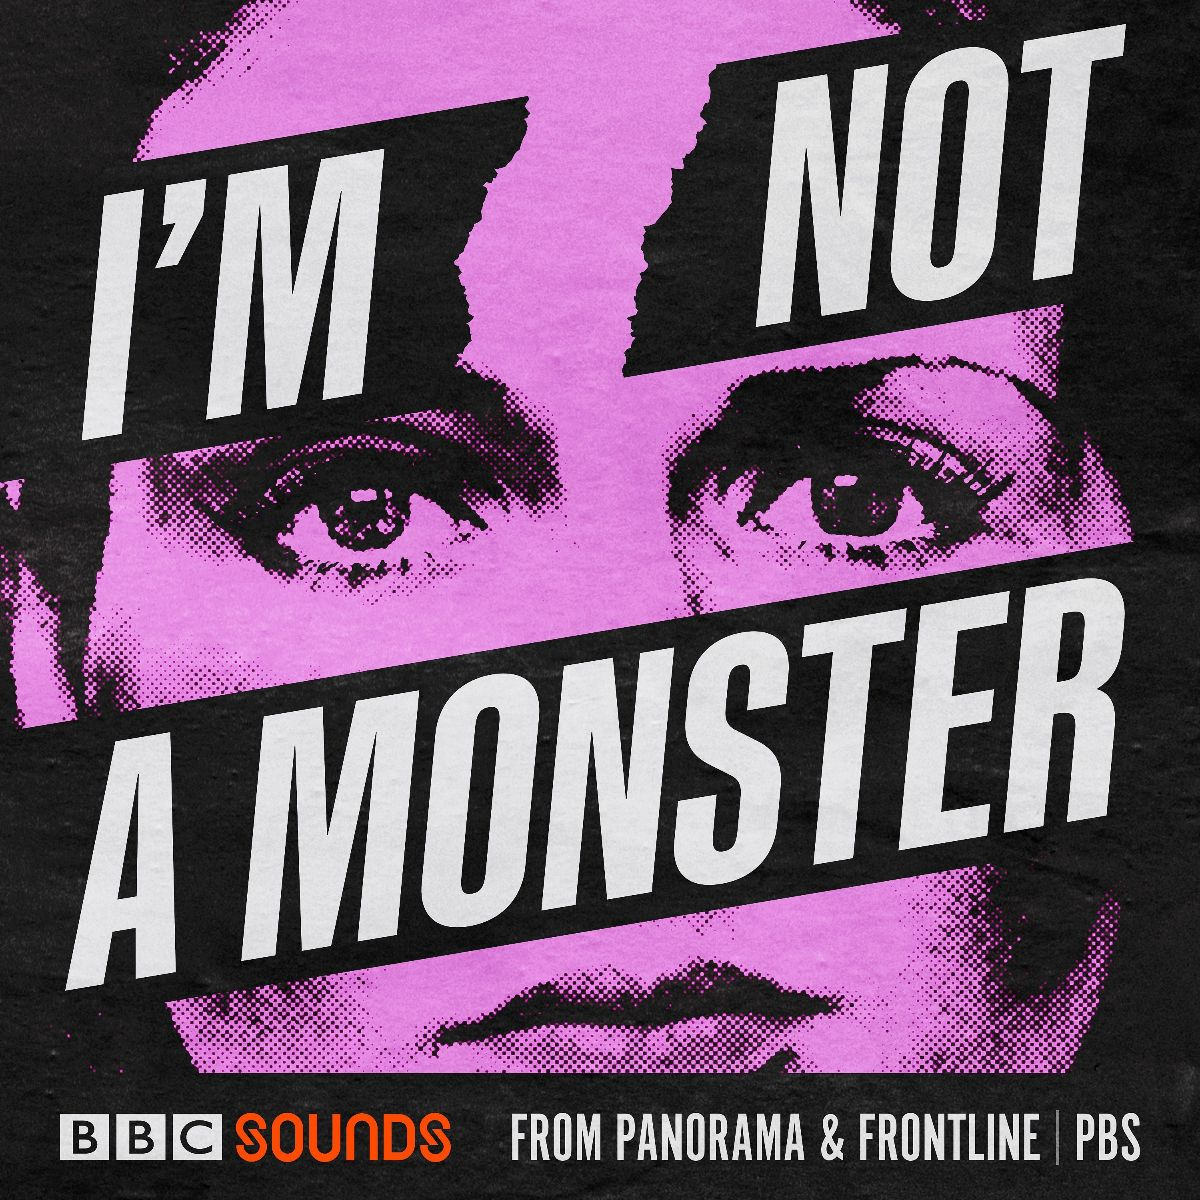 """The podcast art for the show """"I'm Not A Monster,"""" featuring a black background and the face of a woman in purple. The word """"I'm"""" is in white text on a black background and """"Not"""" is as well, both are over each eye. """"A Monster"""" covers her nose, and below her mouth is the BBC Sounds logo and the words """"from Panorama & Frontline 